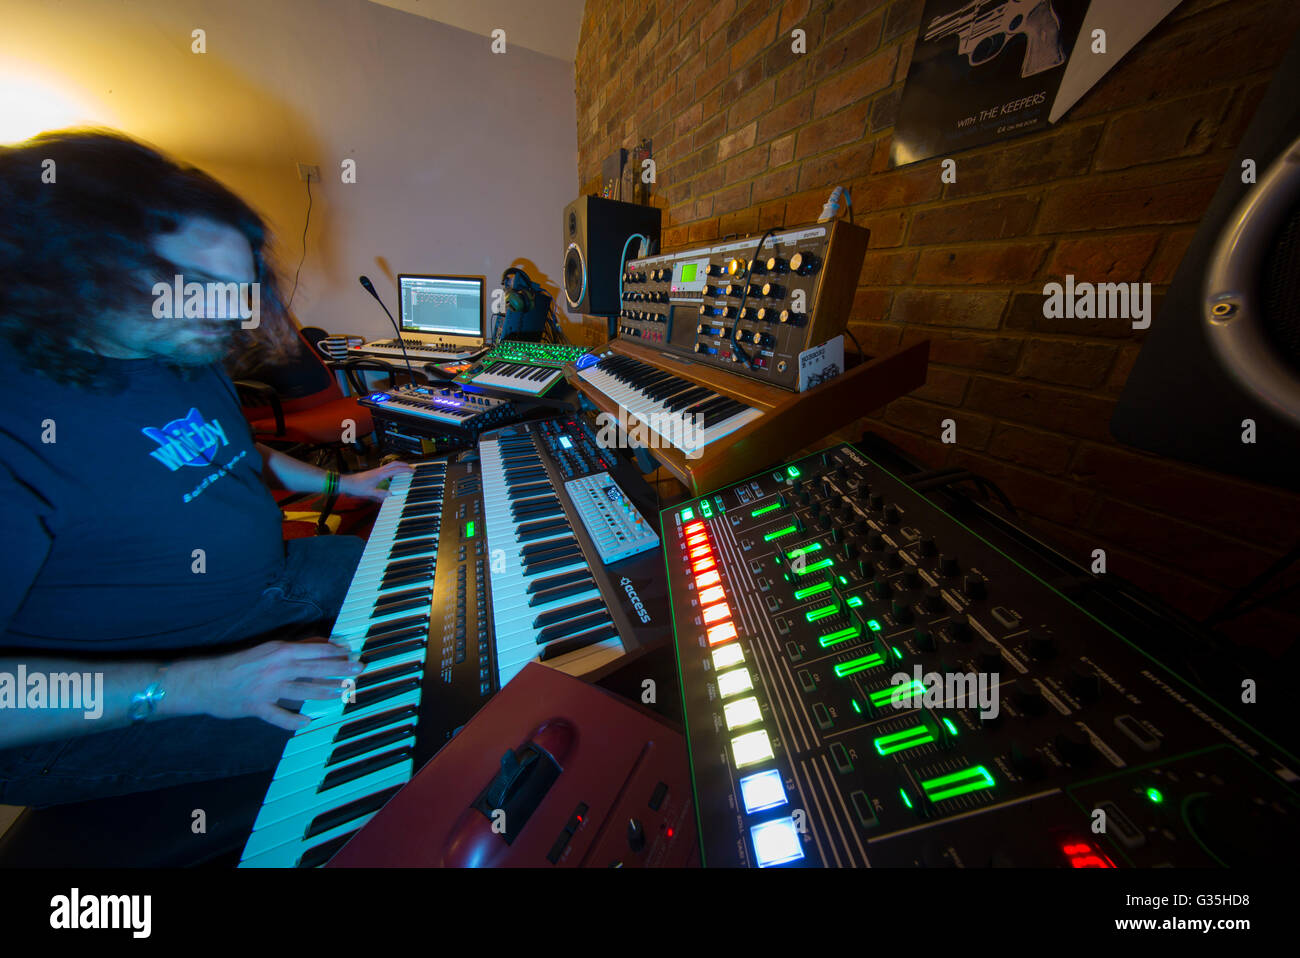 Home music studio with multiple electronic keyboards - Stock Image